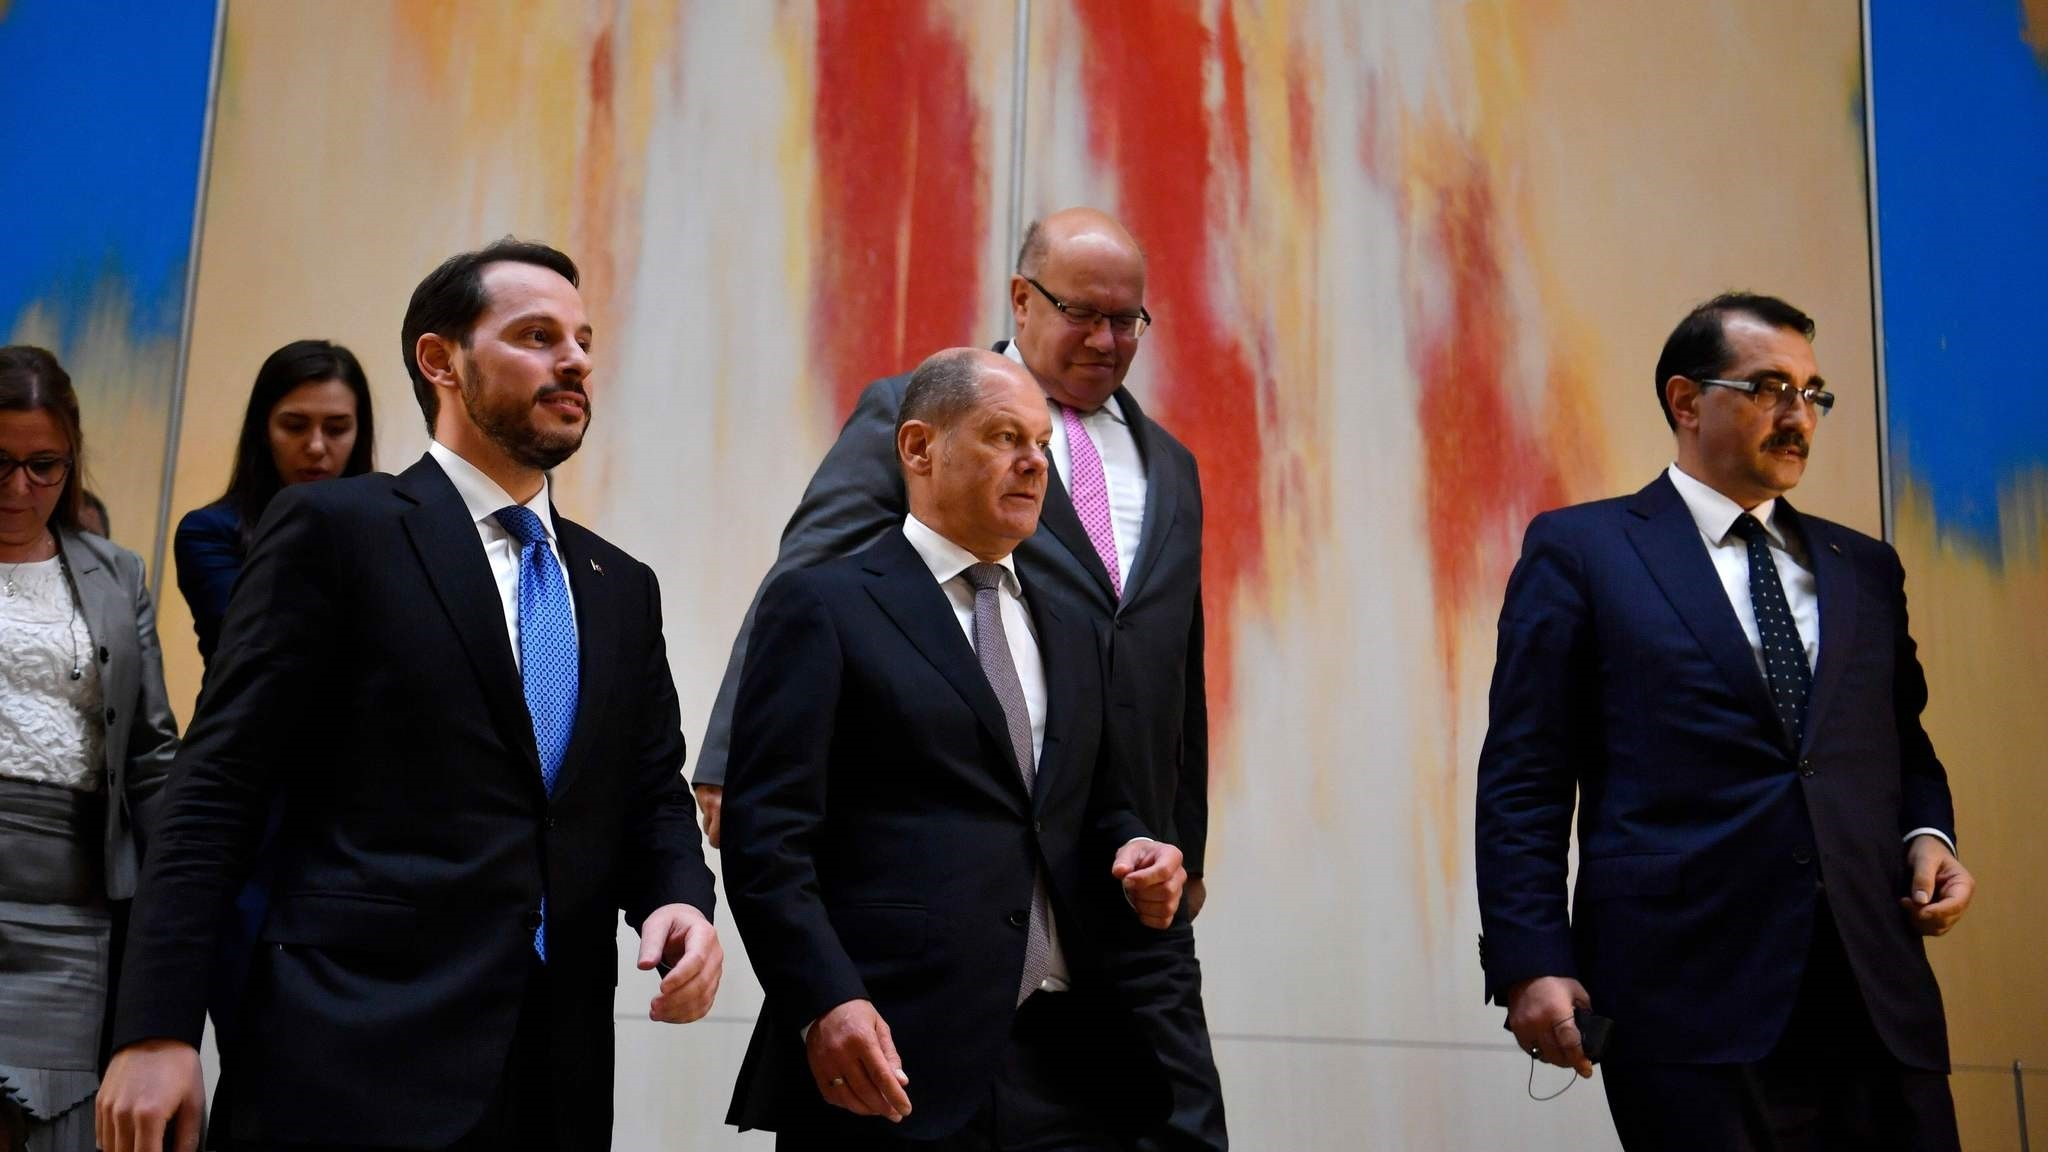 Treasury and Finance Minister Berat Albayrak (L), German Finance Minister Olaf Scholz (C) and German Economy Minister Peter Altmaier (R) arrive to give a joint press statement following their meeting, Berlin, Sept. 21.